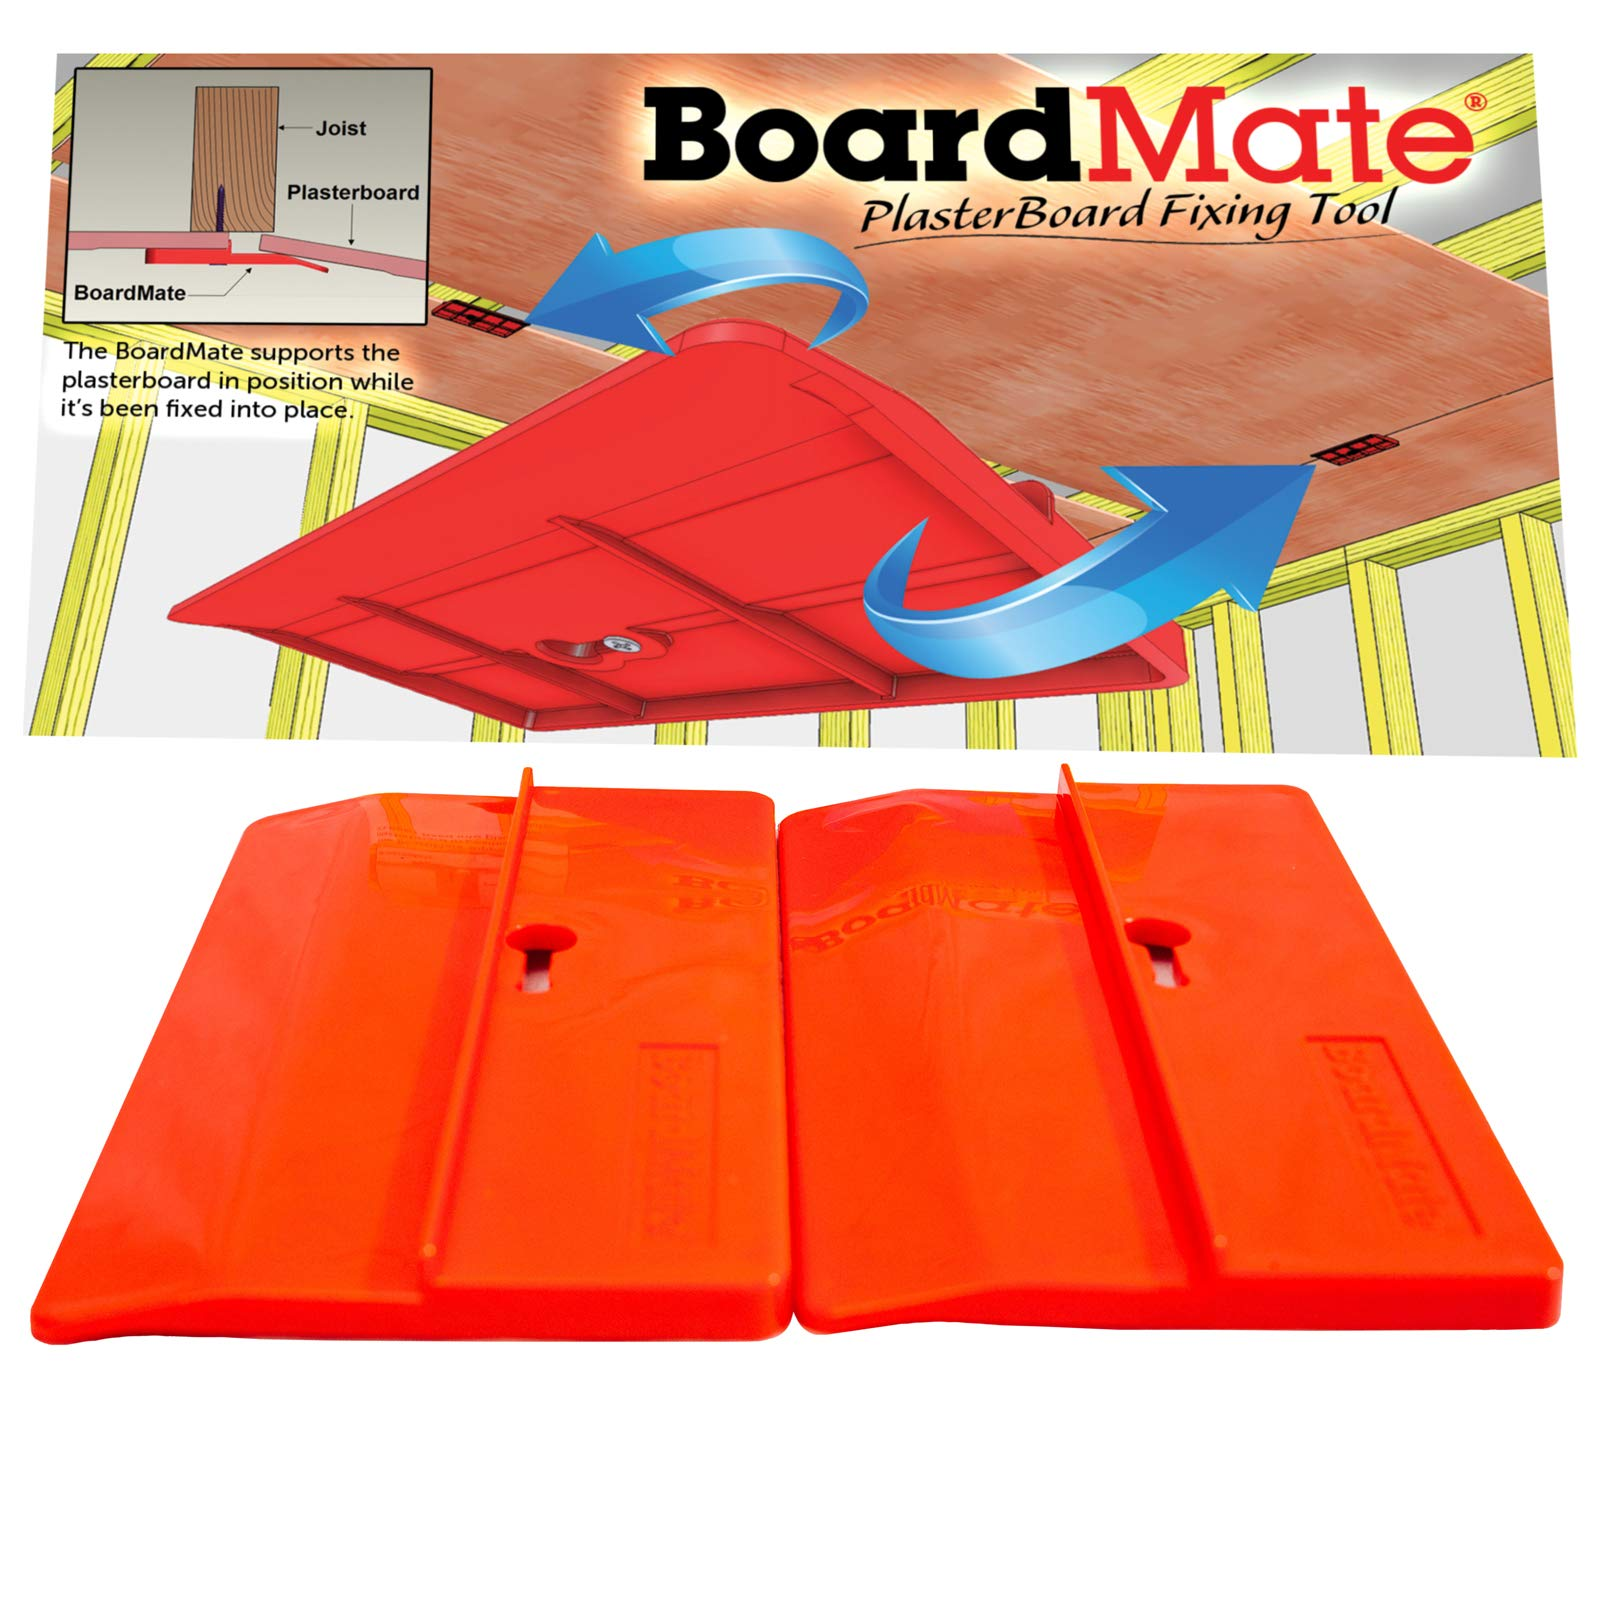 BoardMate Drywall Fitting Supports Installing